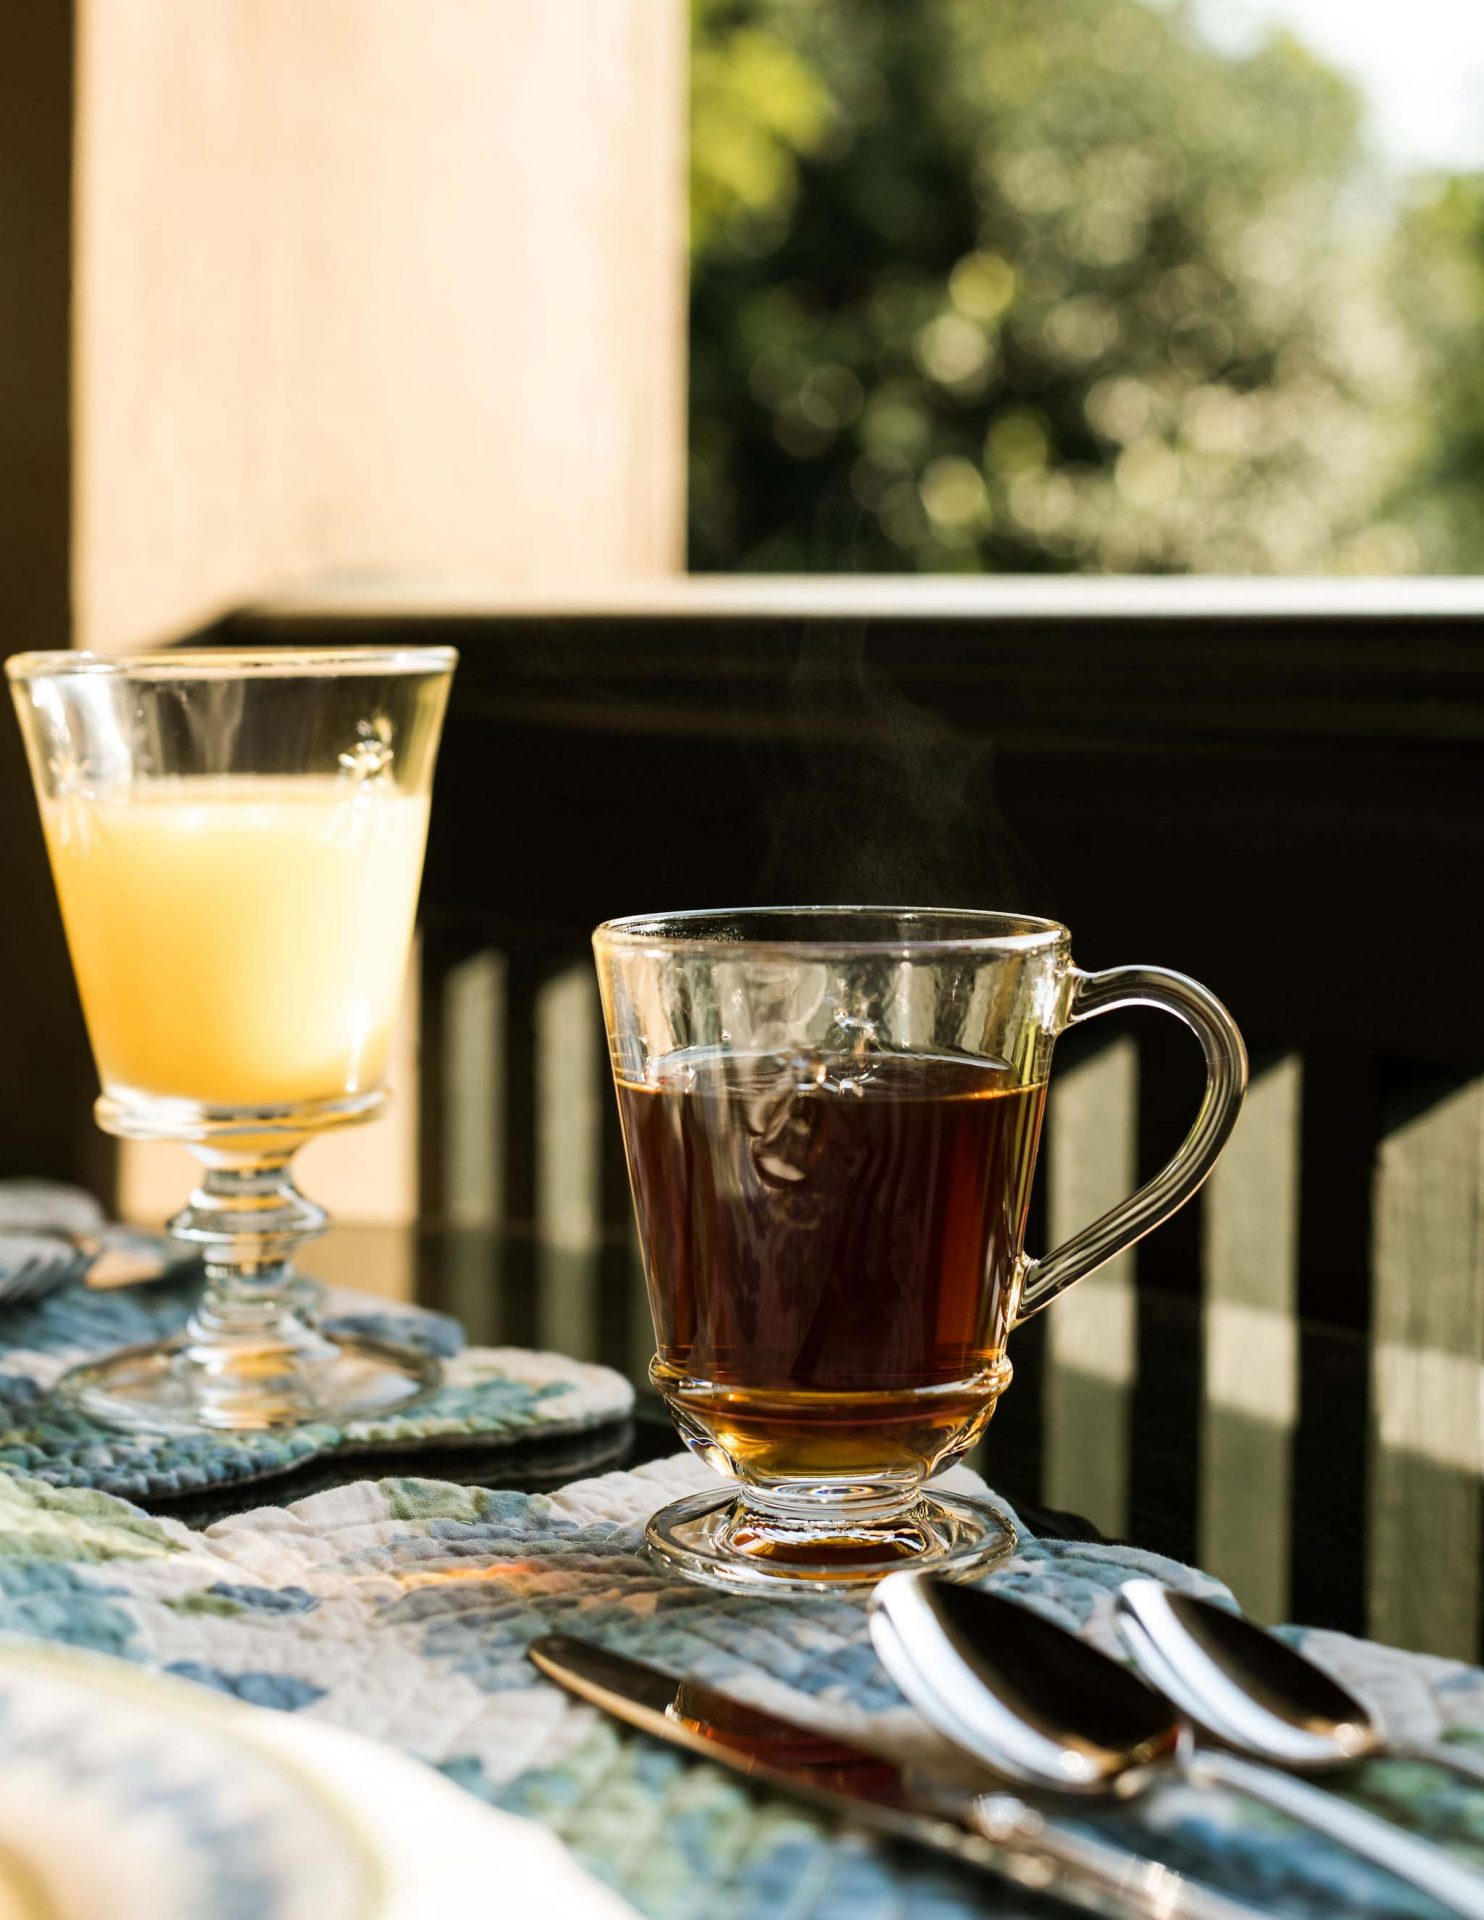 A close-up of a short glass with tea and a longer glass with orange juice.